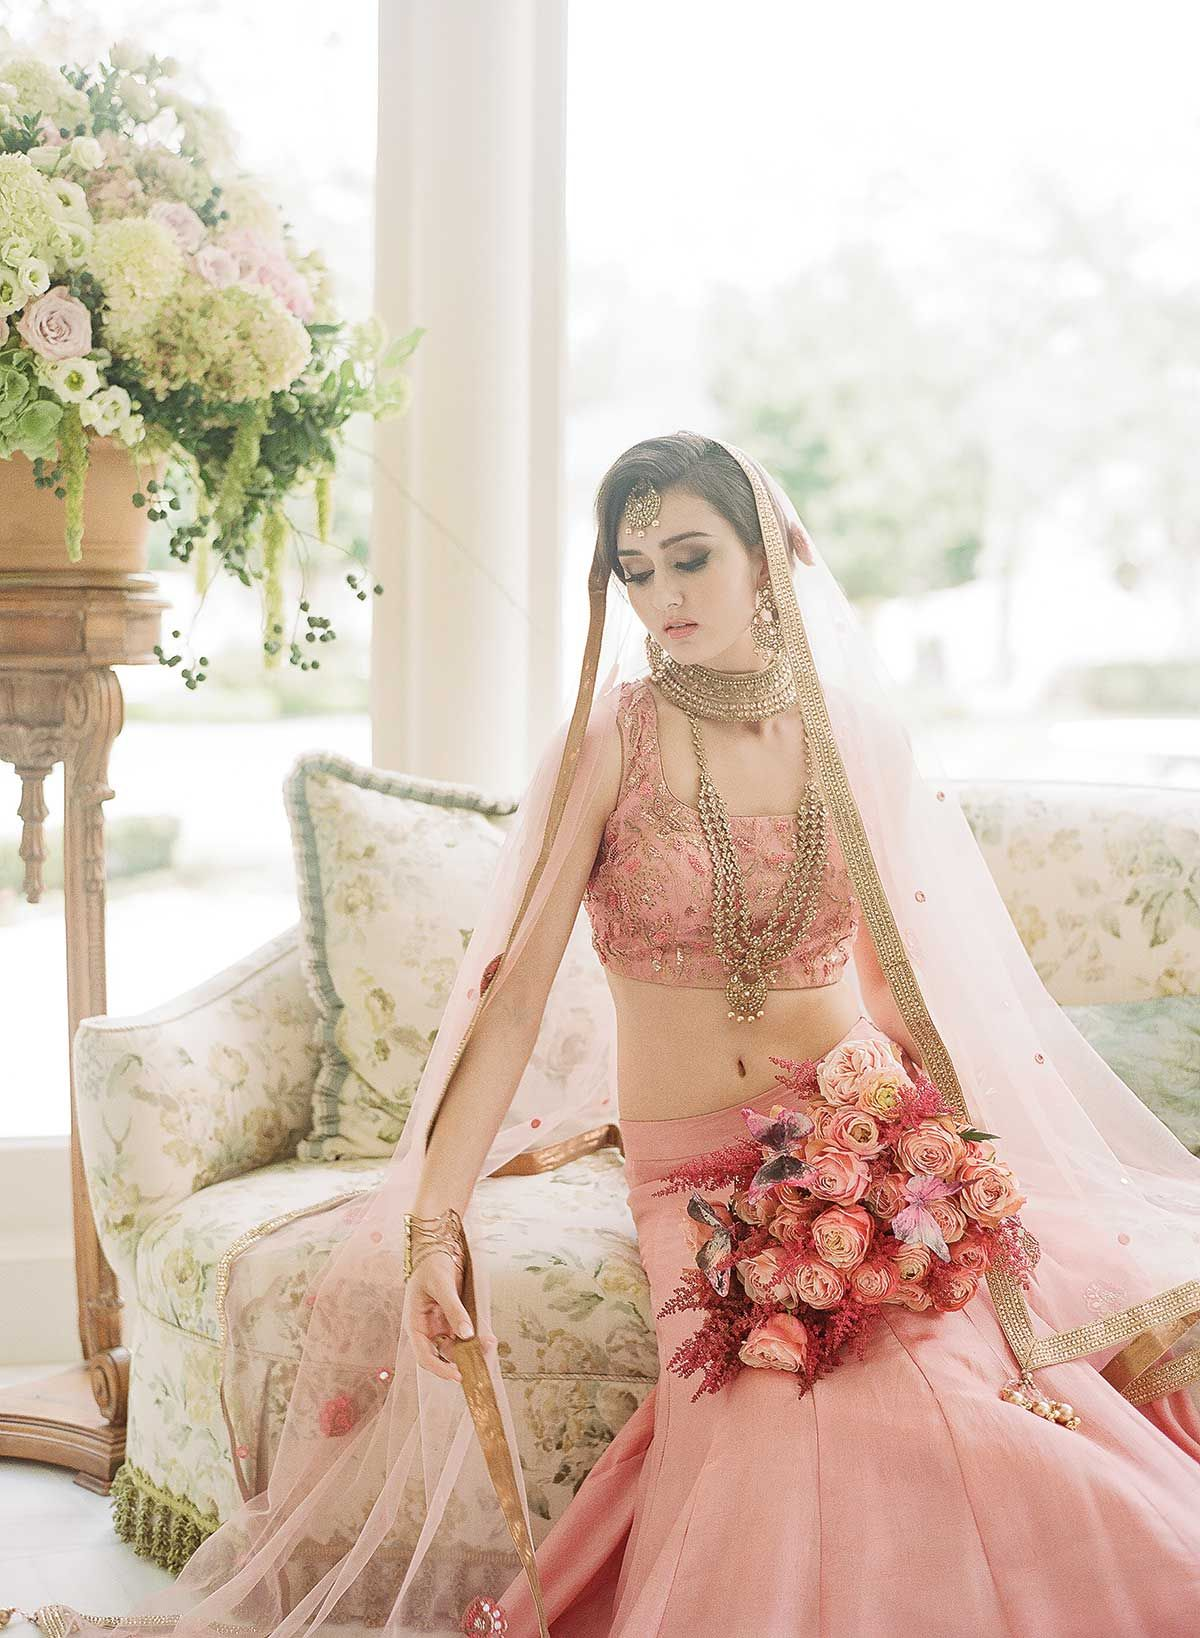 The New American Bride Weddings In Houston Styled Shoot